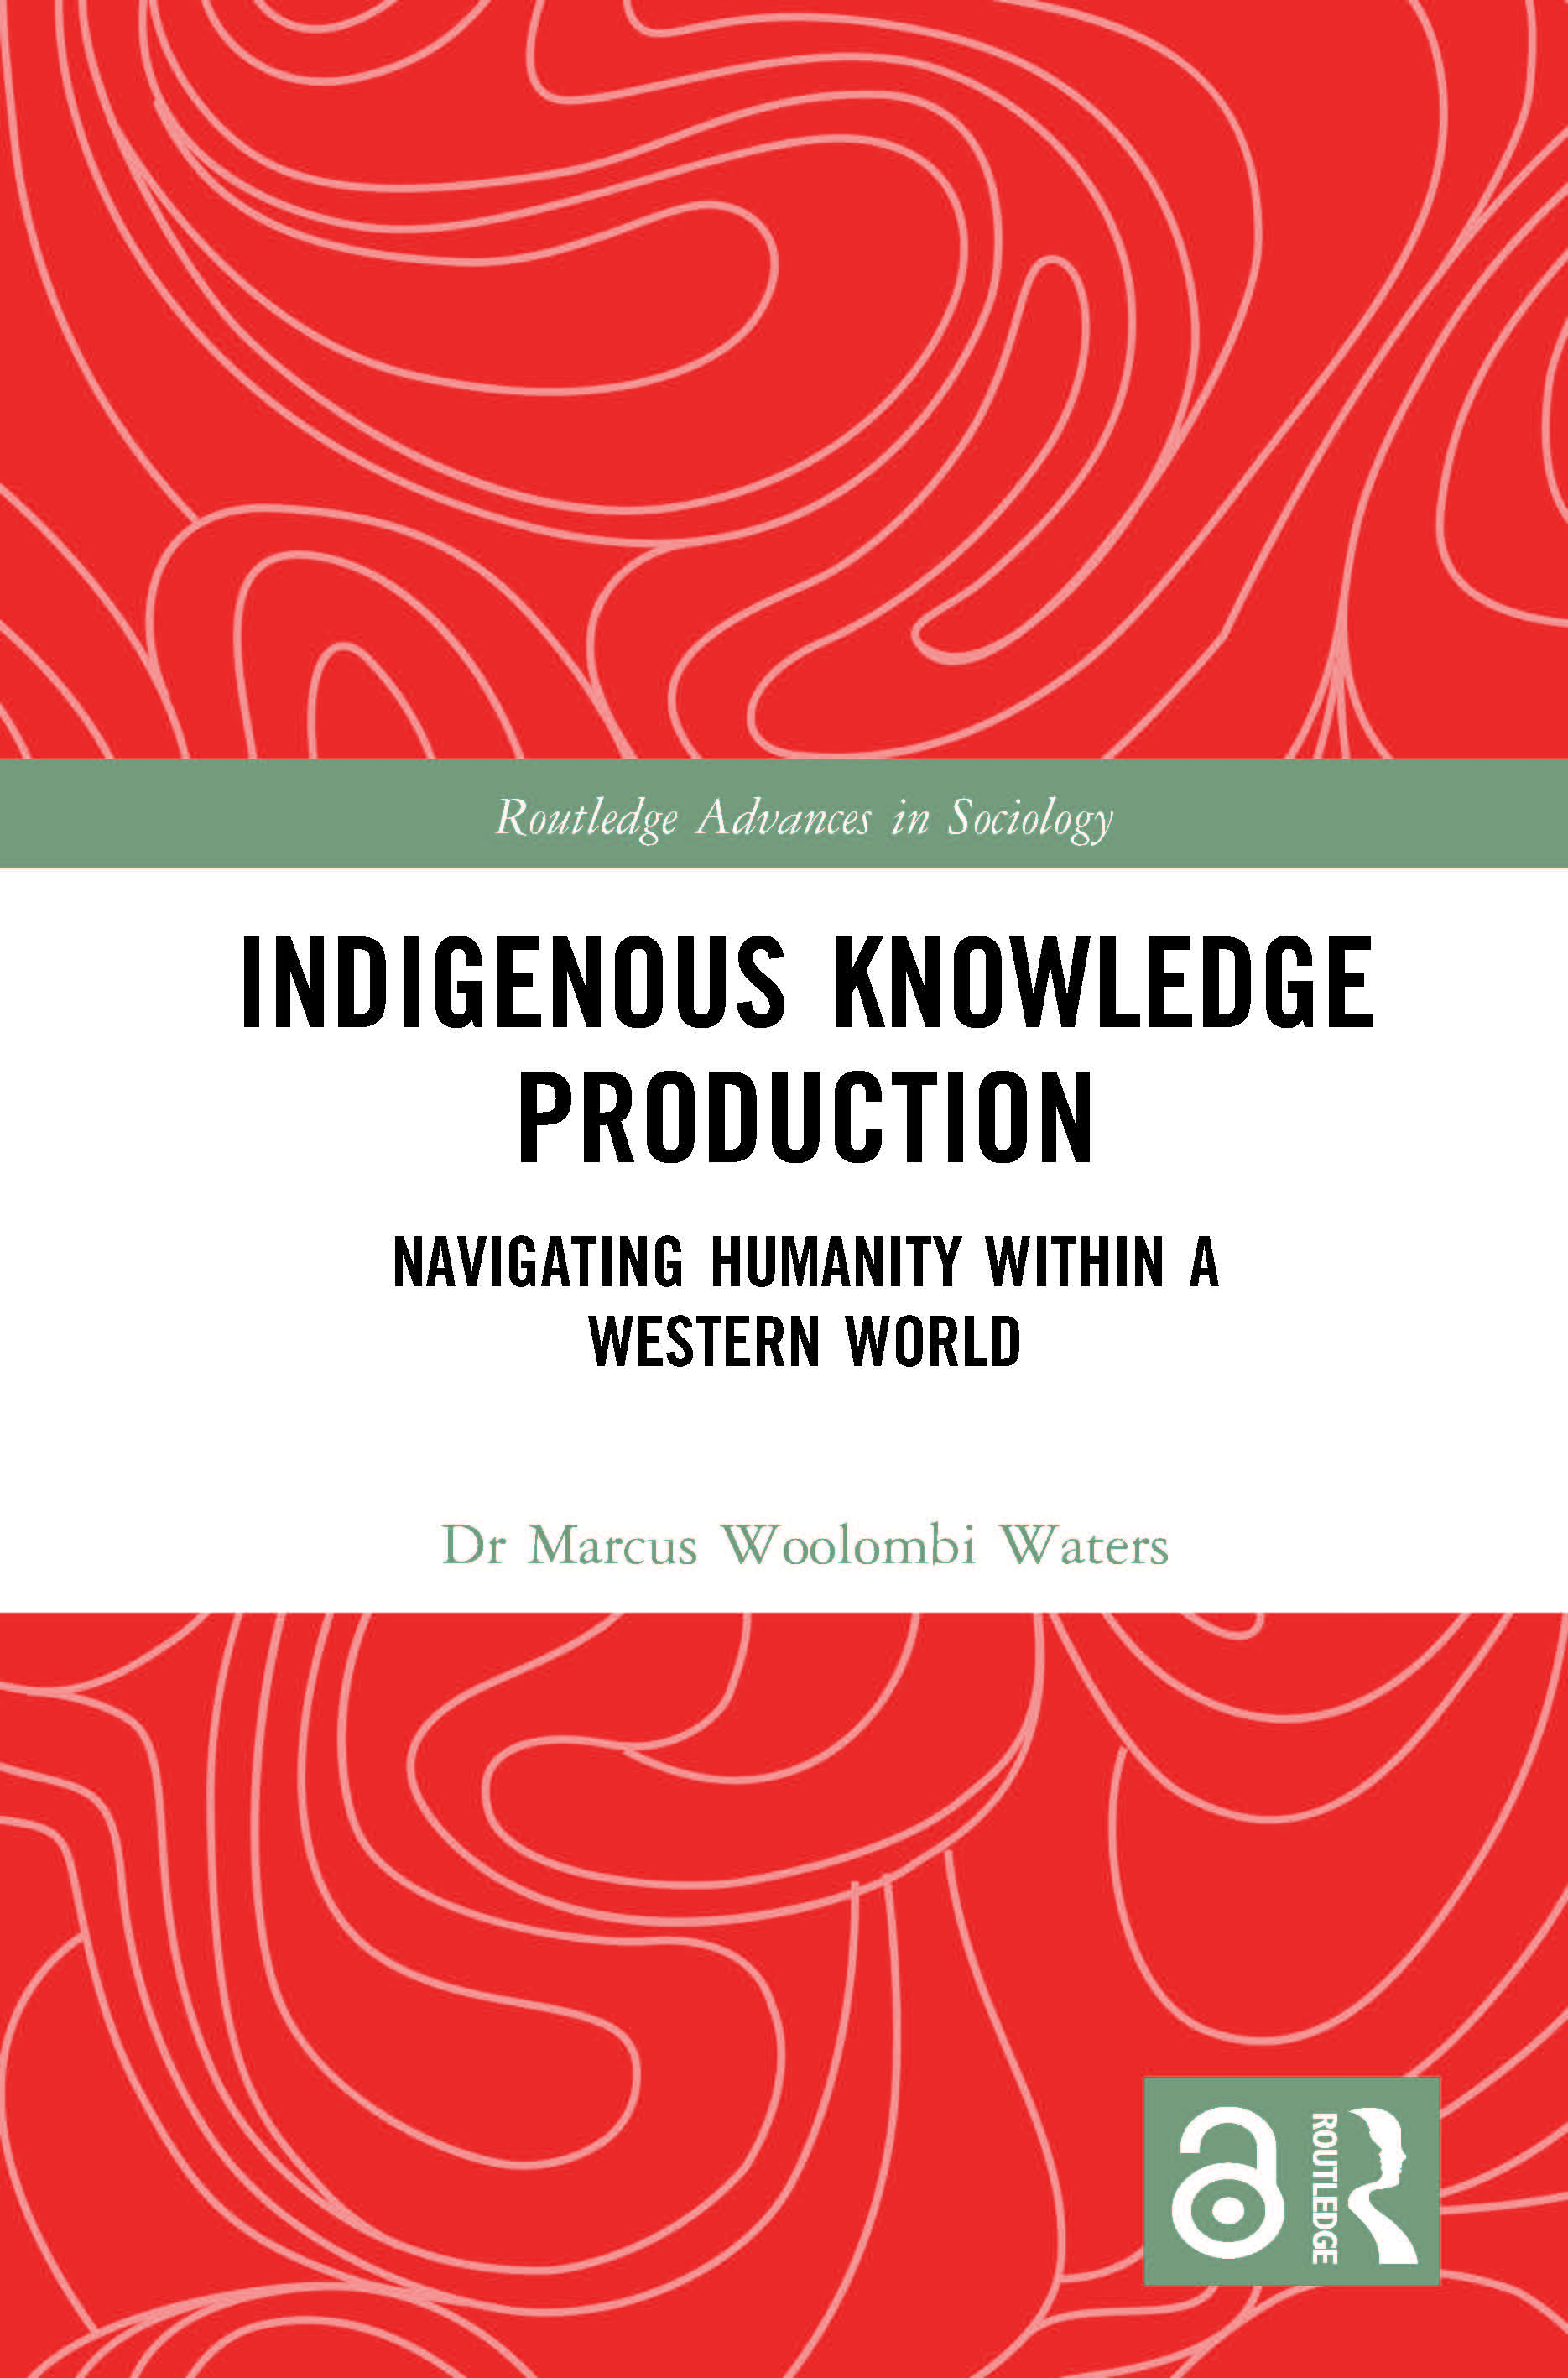 Indigenous Knowledge Production: Navigating Humanity within a Western World book cover